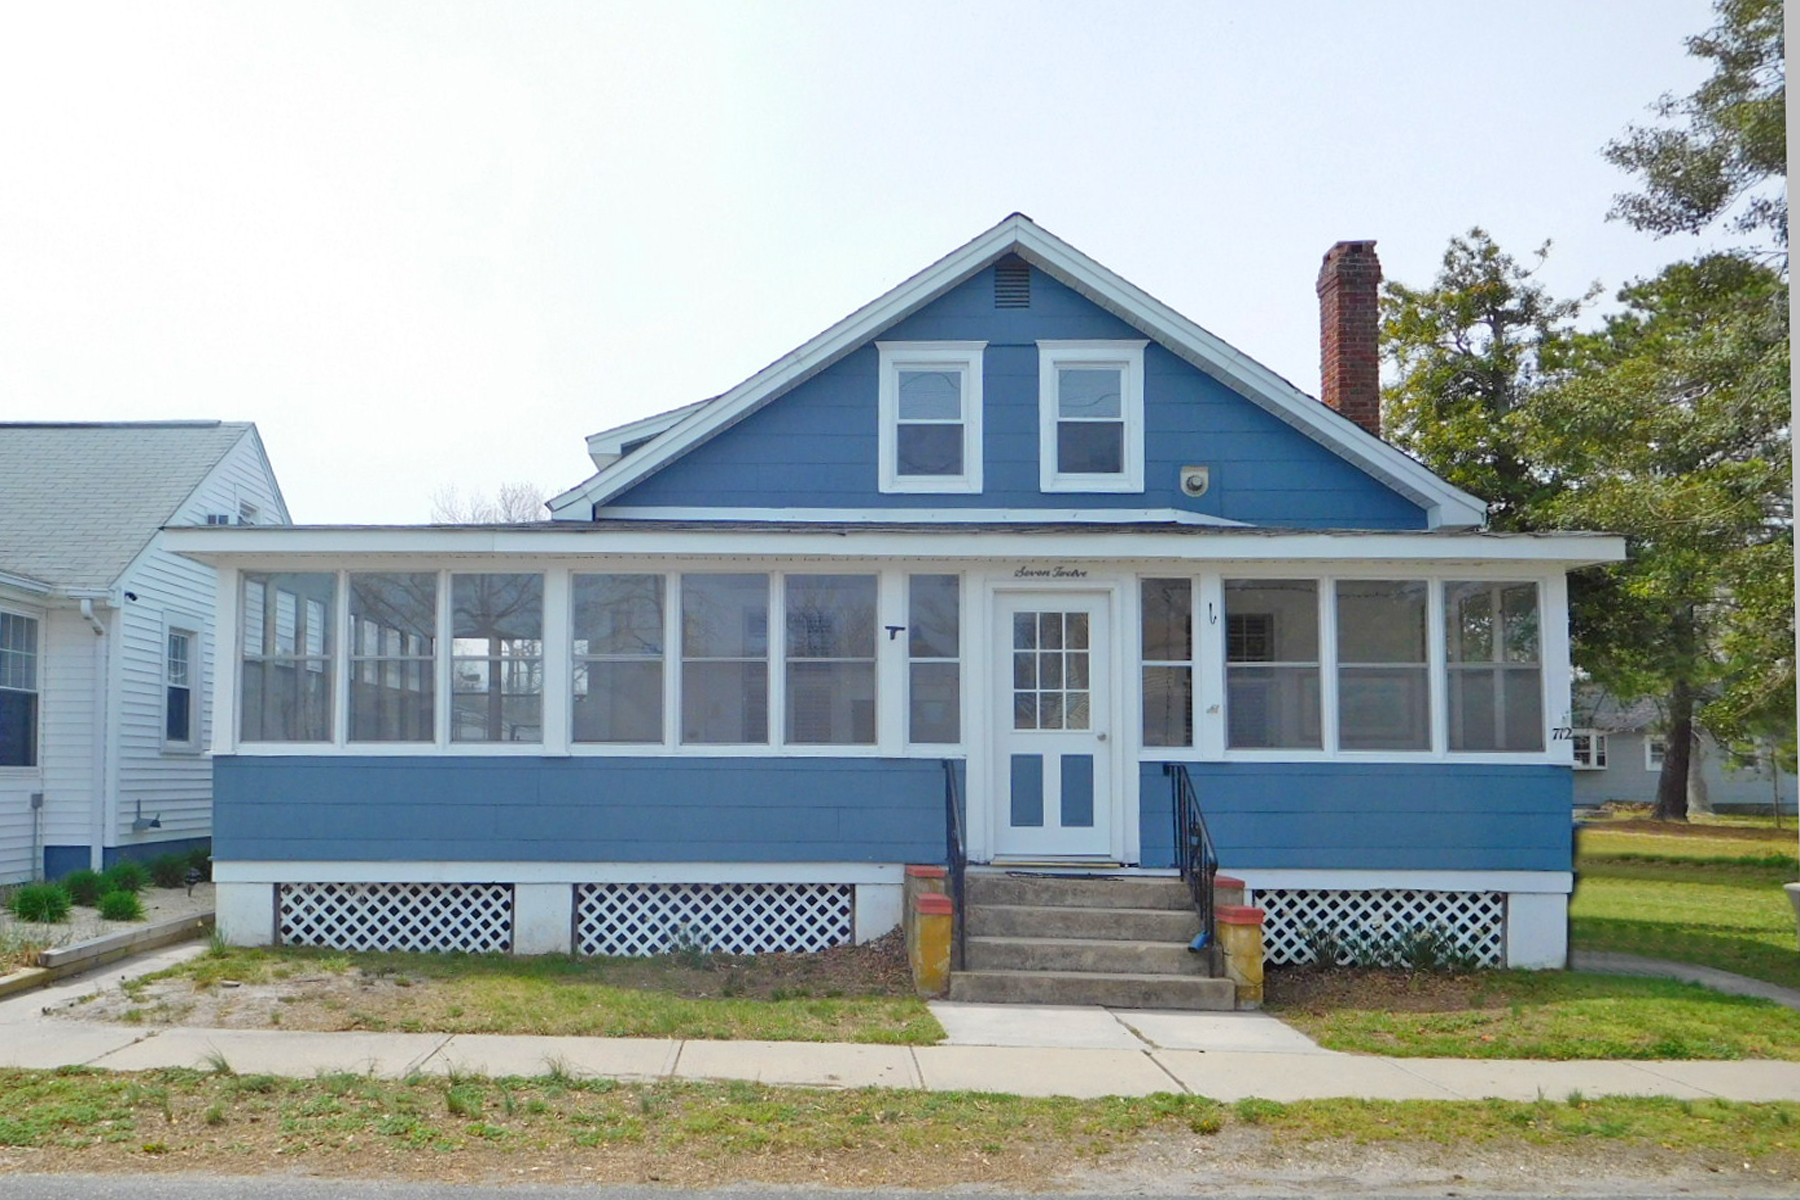 Single Family Homes for Sale at Charming Cape Located On Quiet Street 712 Stone Harbor Avenue Ocean Gate, New Jersey 08740 United States